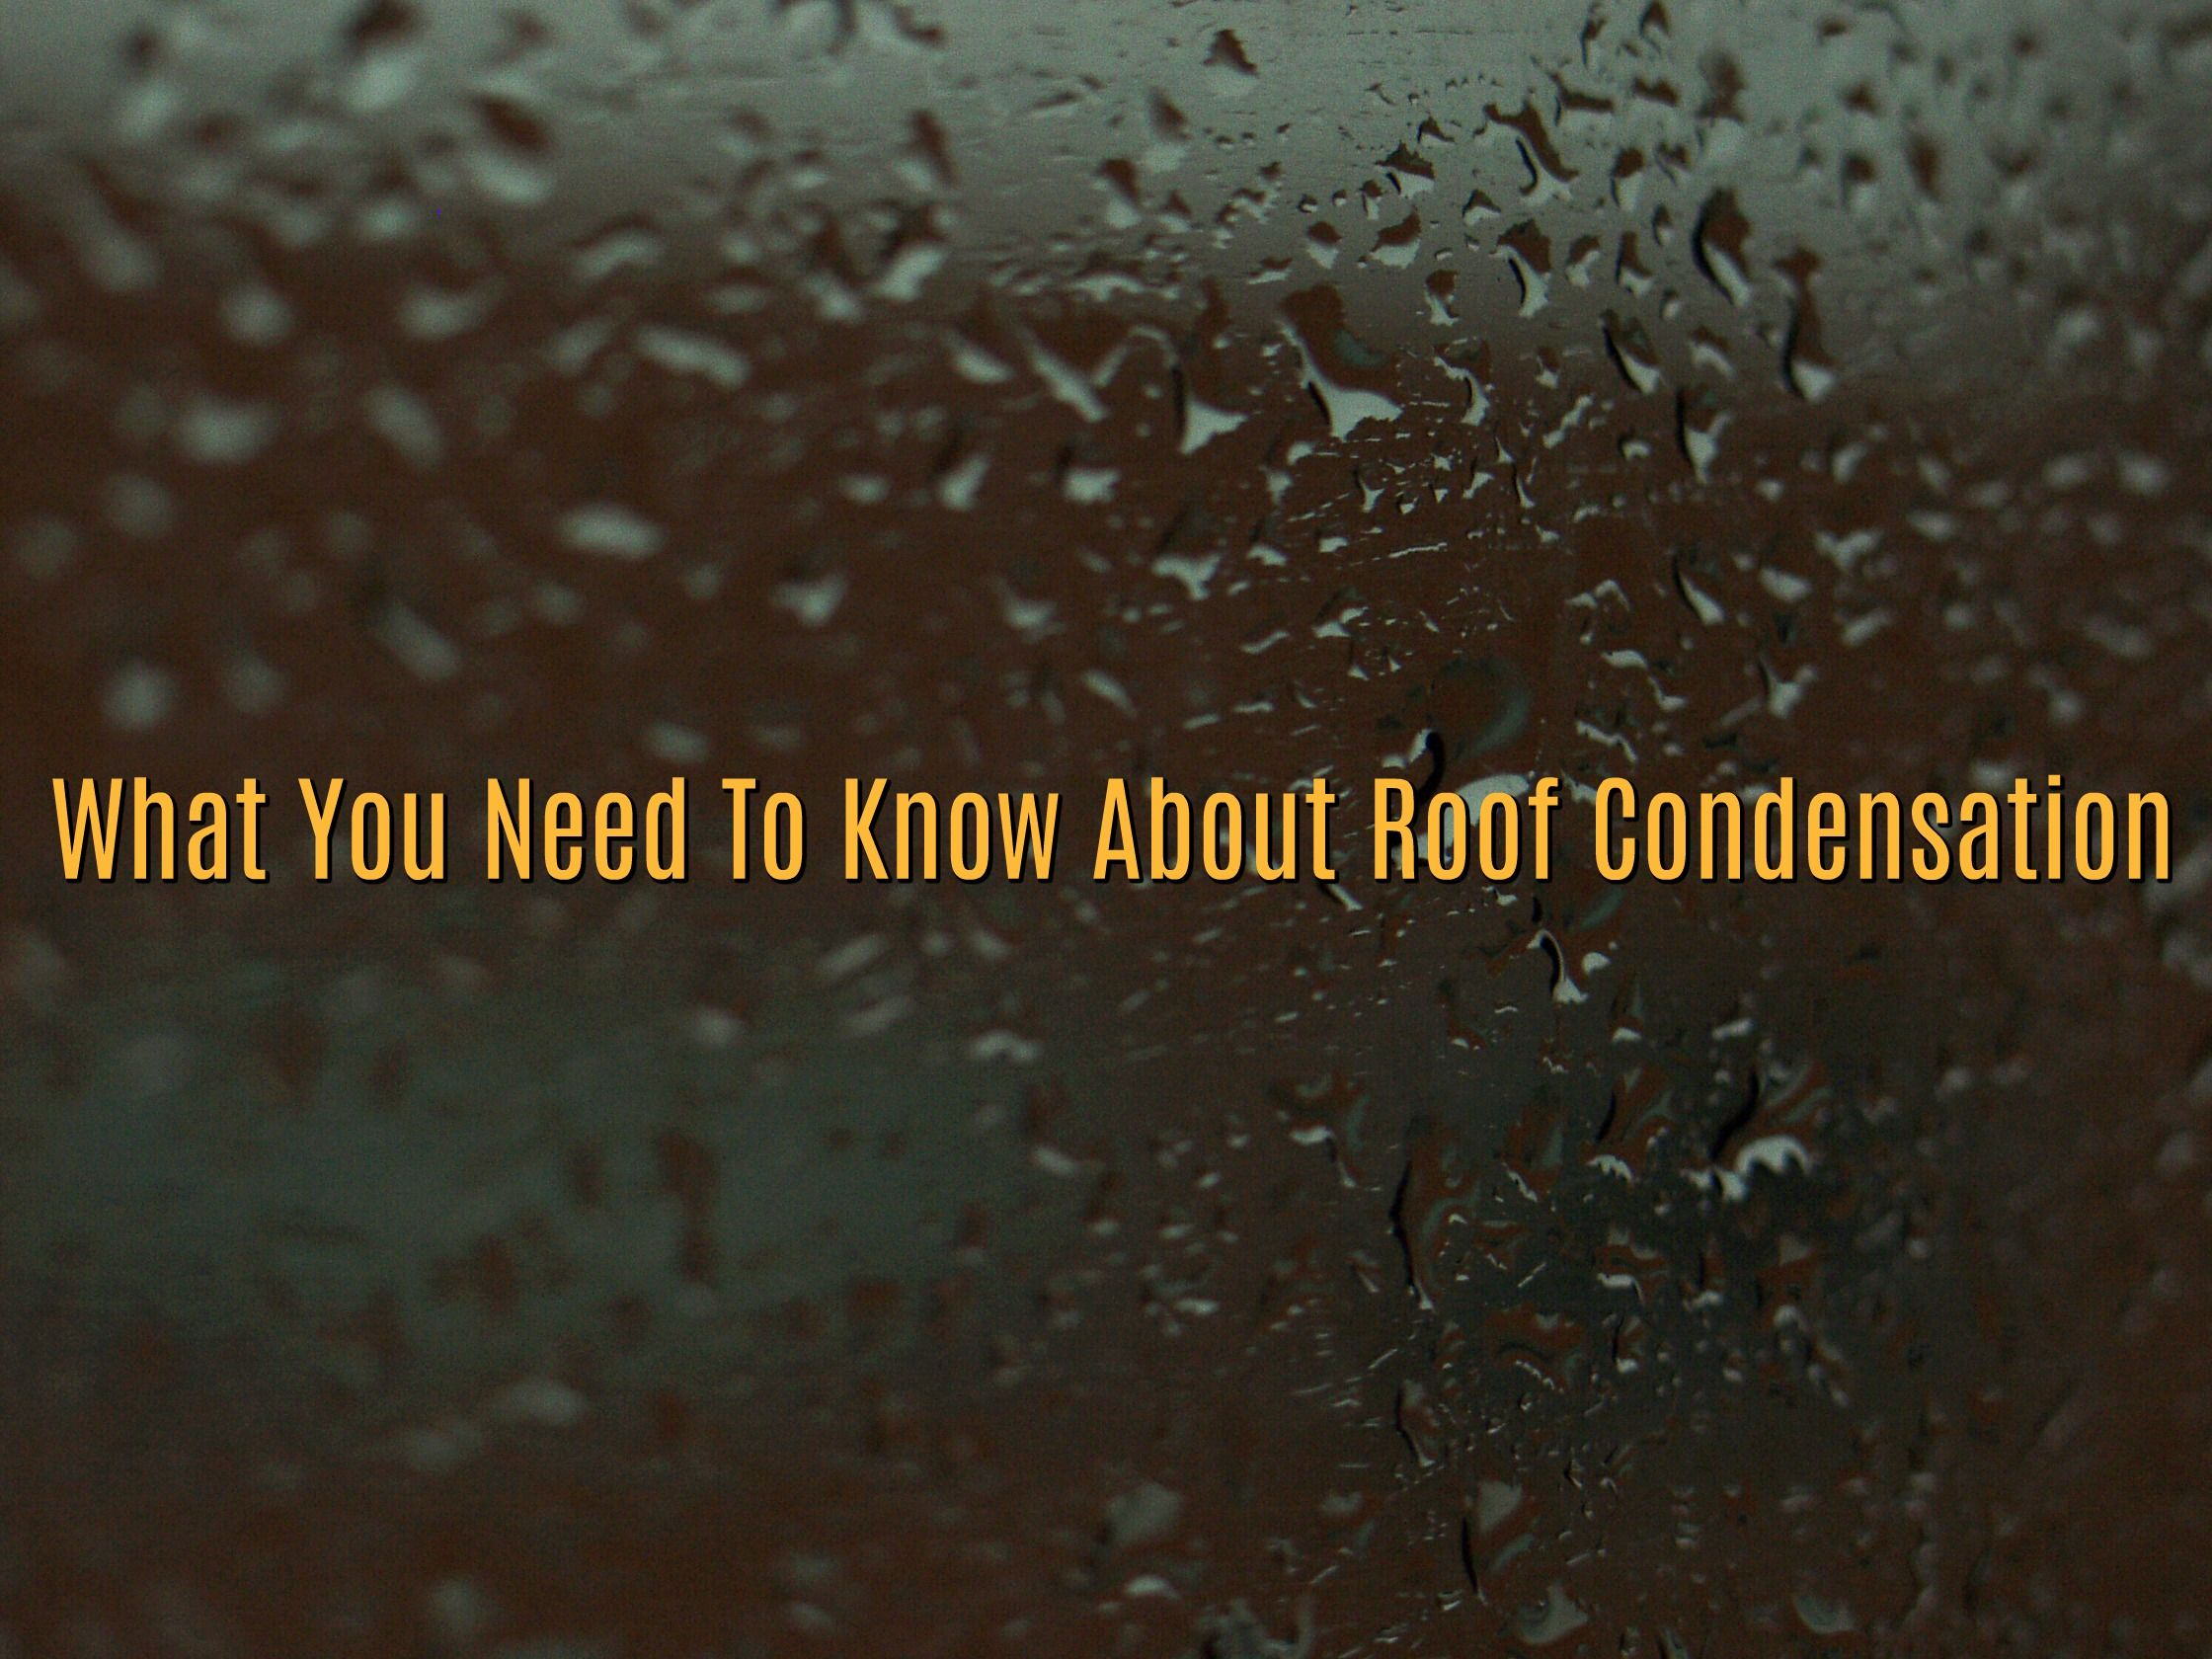 What You Need To Know About Roof Condensation Condensation Roof Need To Know